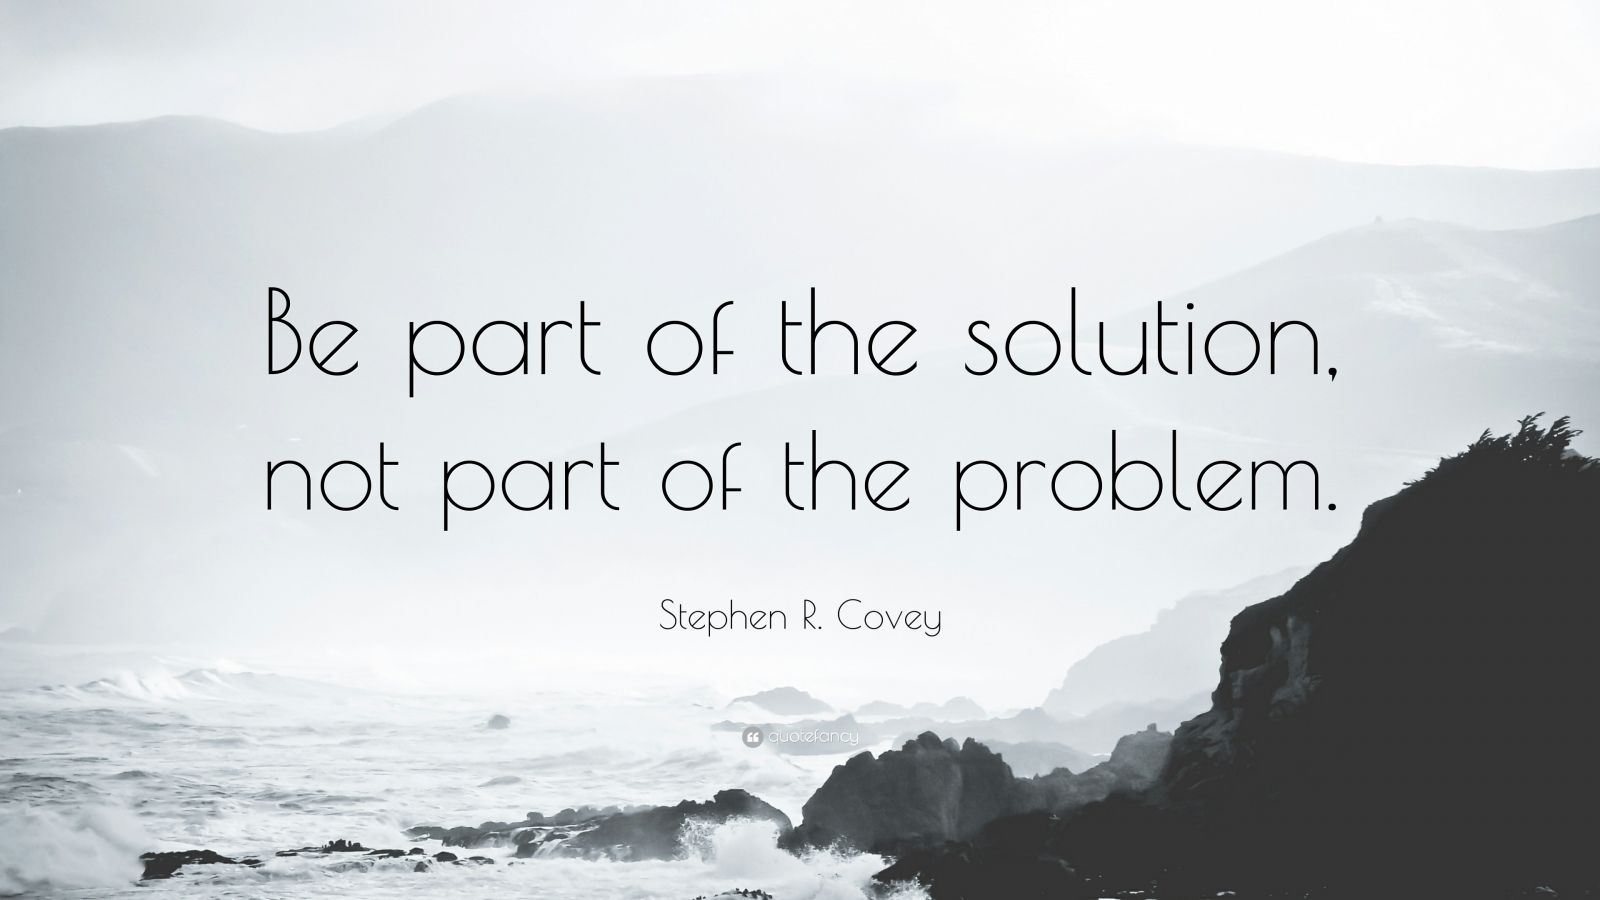 """Stephen R. Covey Quote: """"Be part of the solution, not part of the problem."""""""